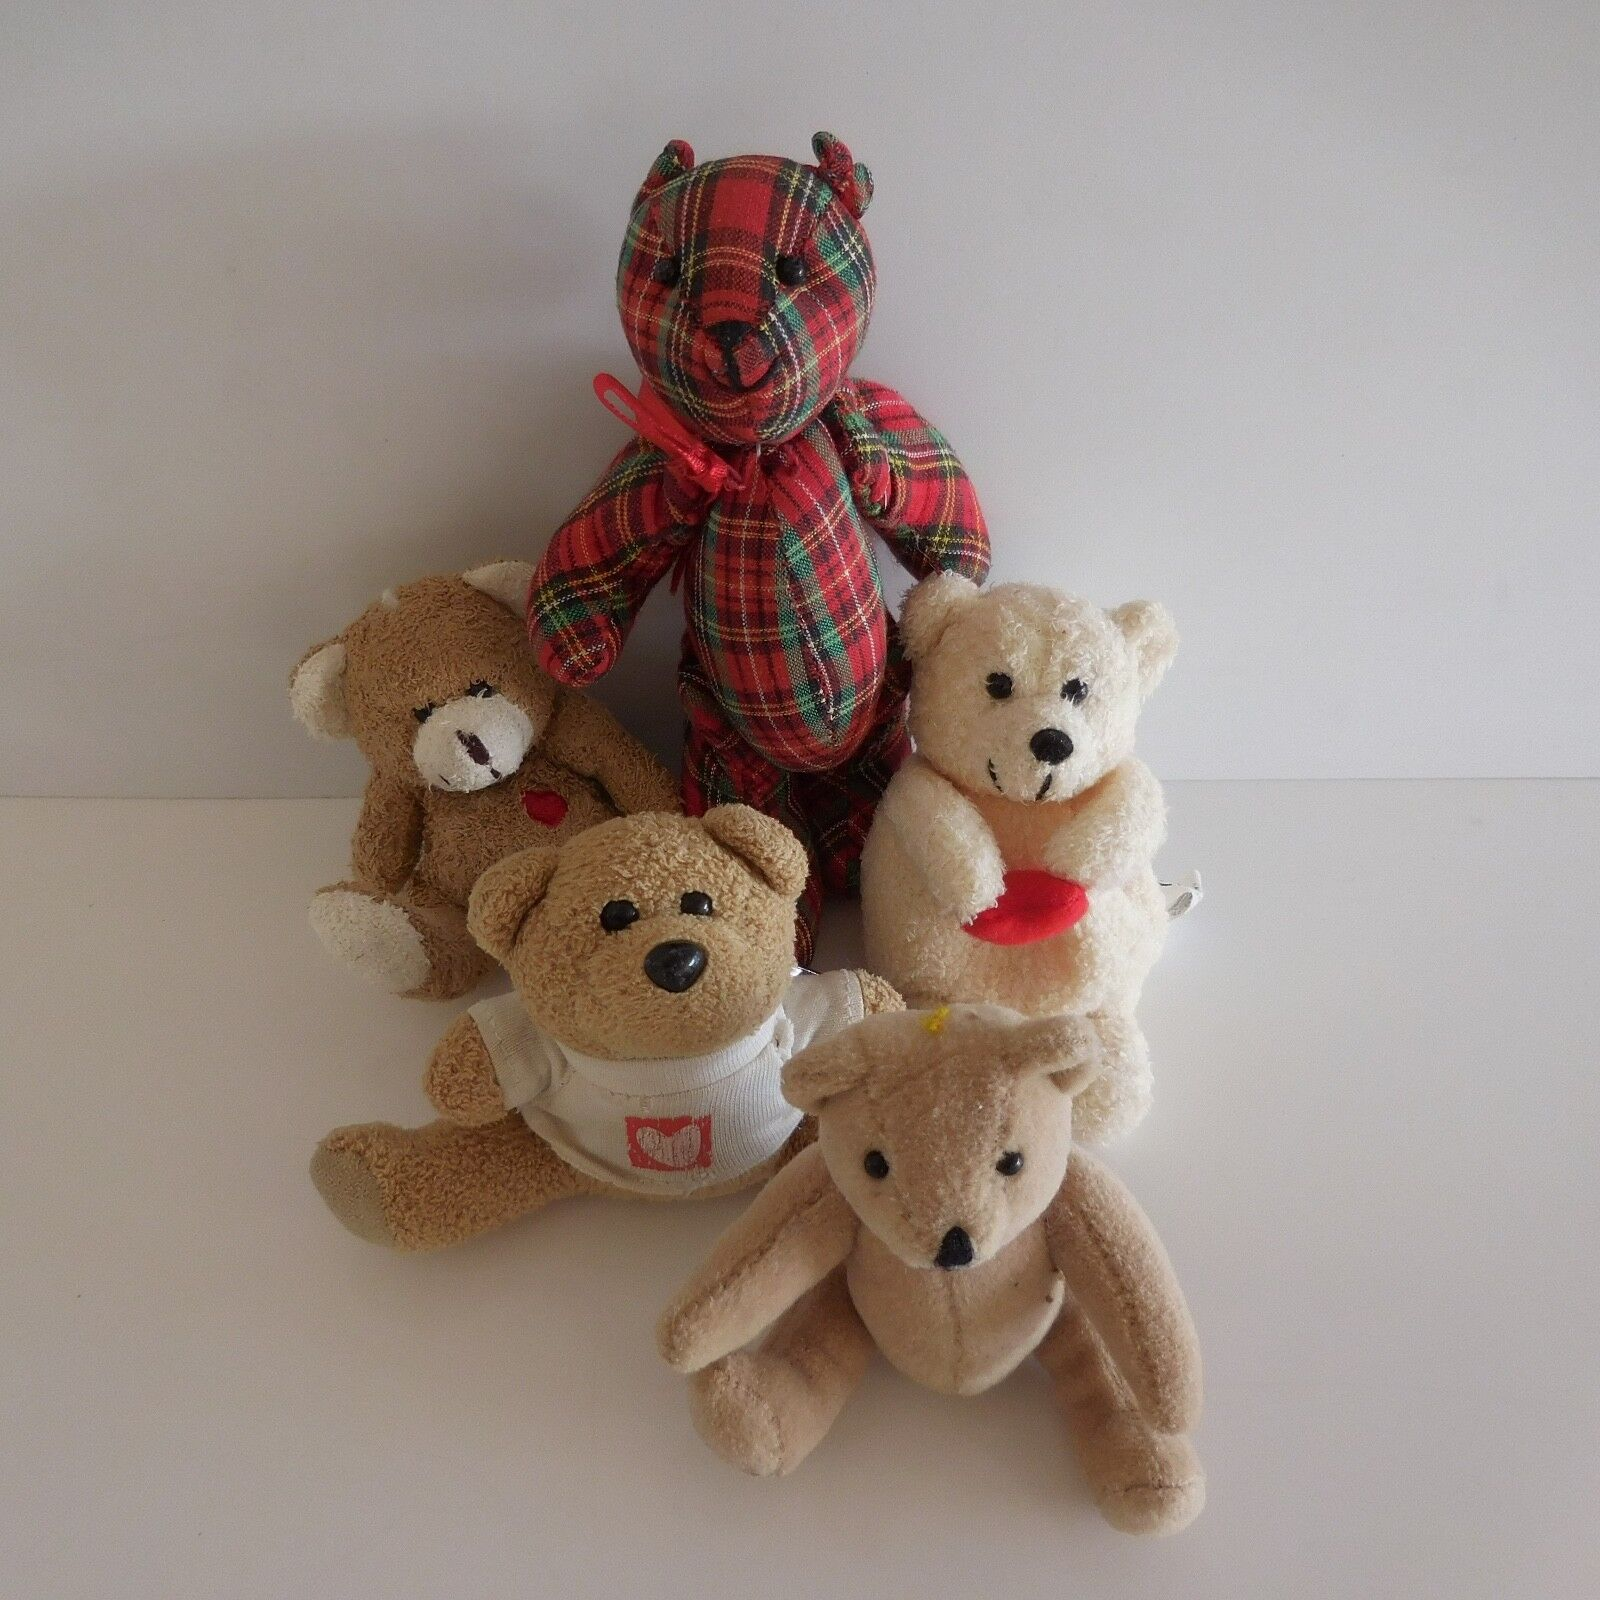 Lot de 5 doudous nounours figurines peluches vintage design estampe PN France